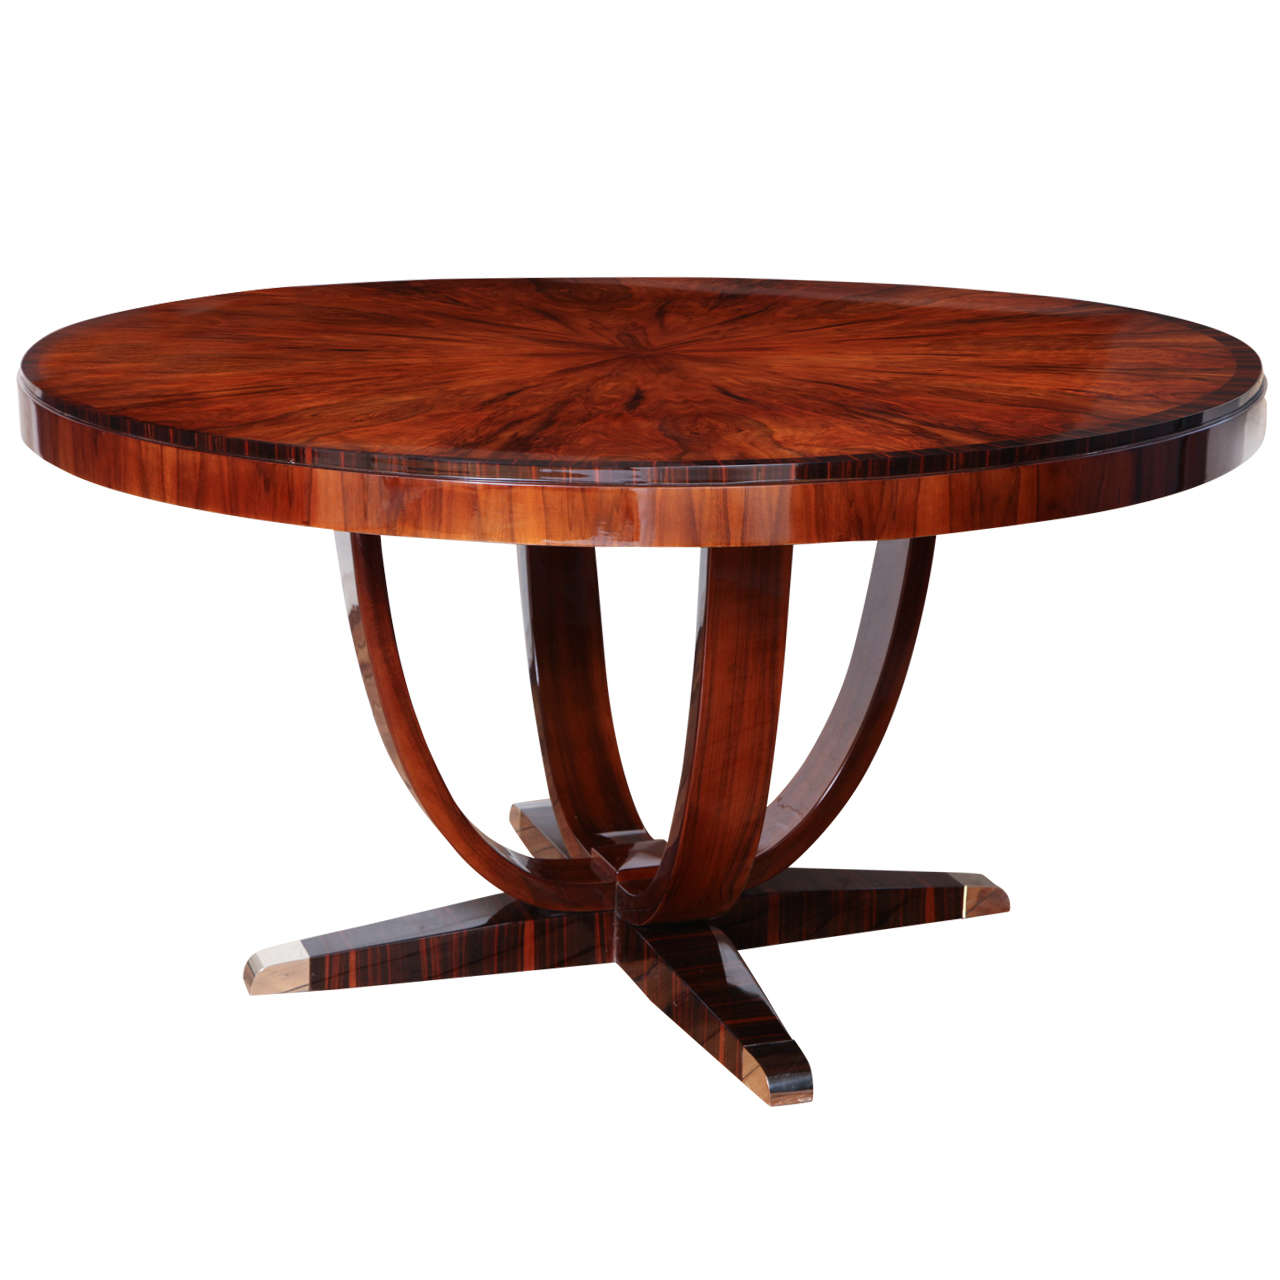 fabulous art deco round dining table at 1stdibs. Black Bedroom Furniture Sets. Home Design Ideas